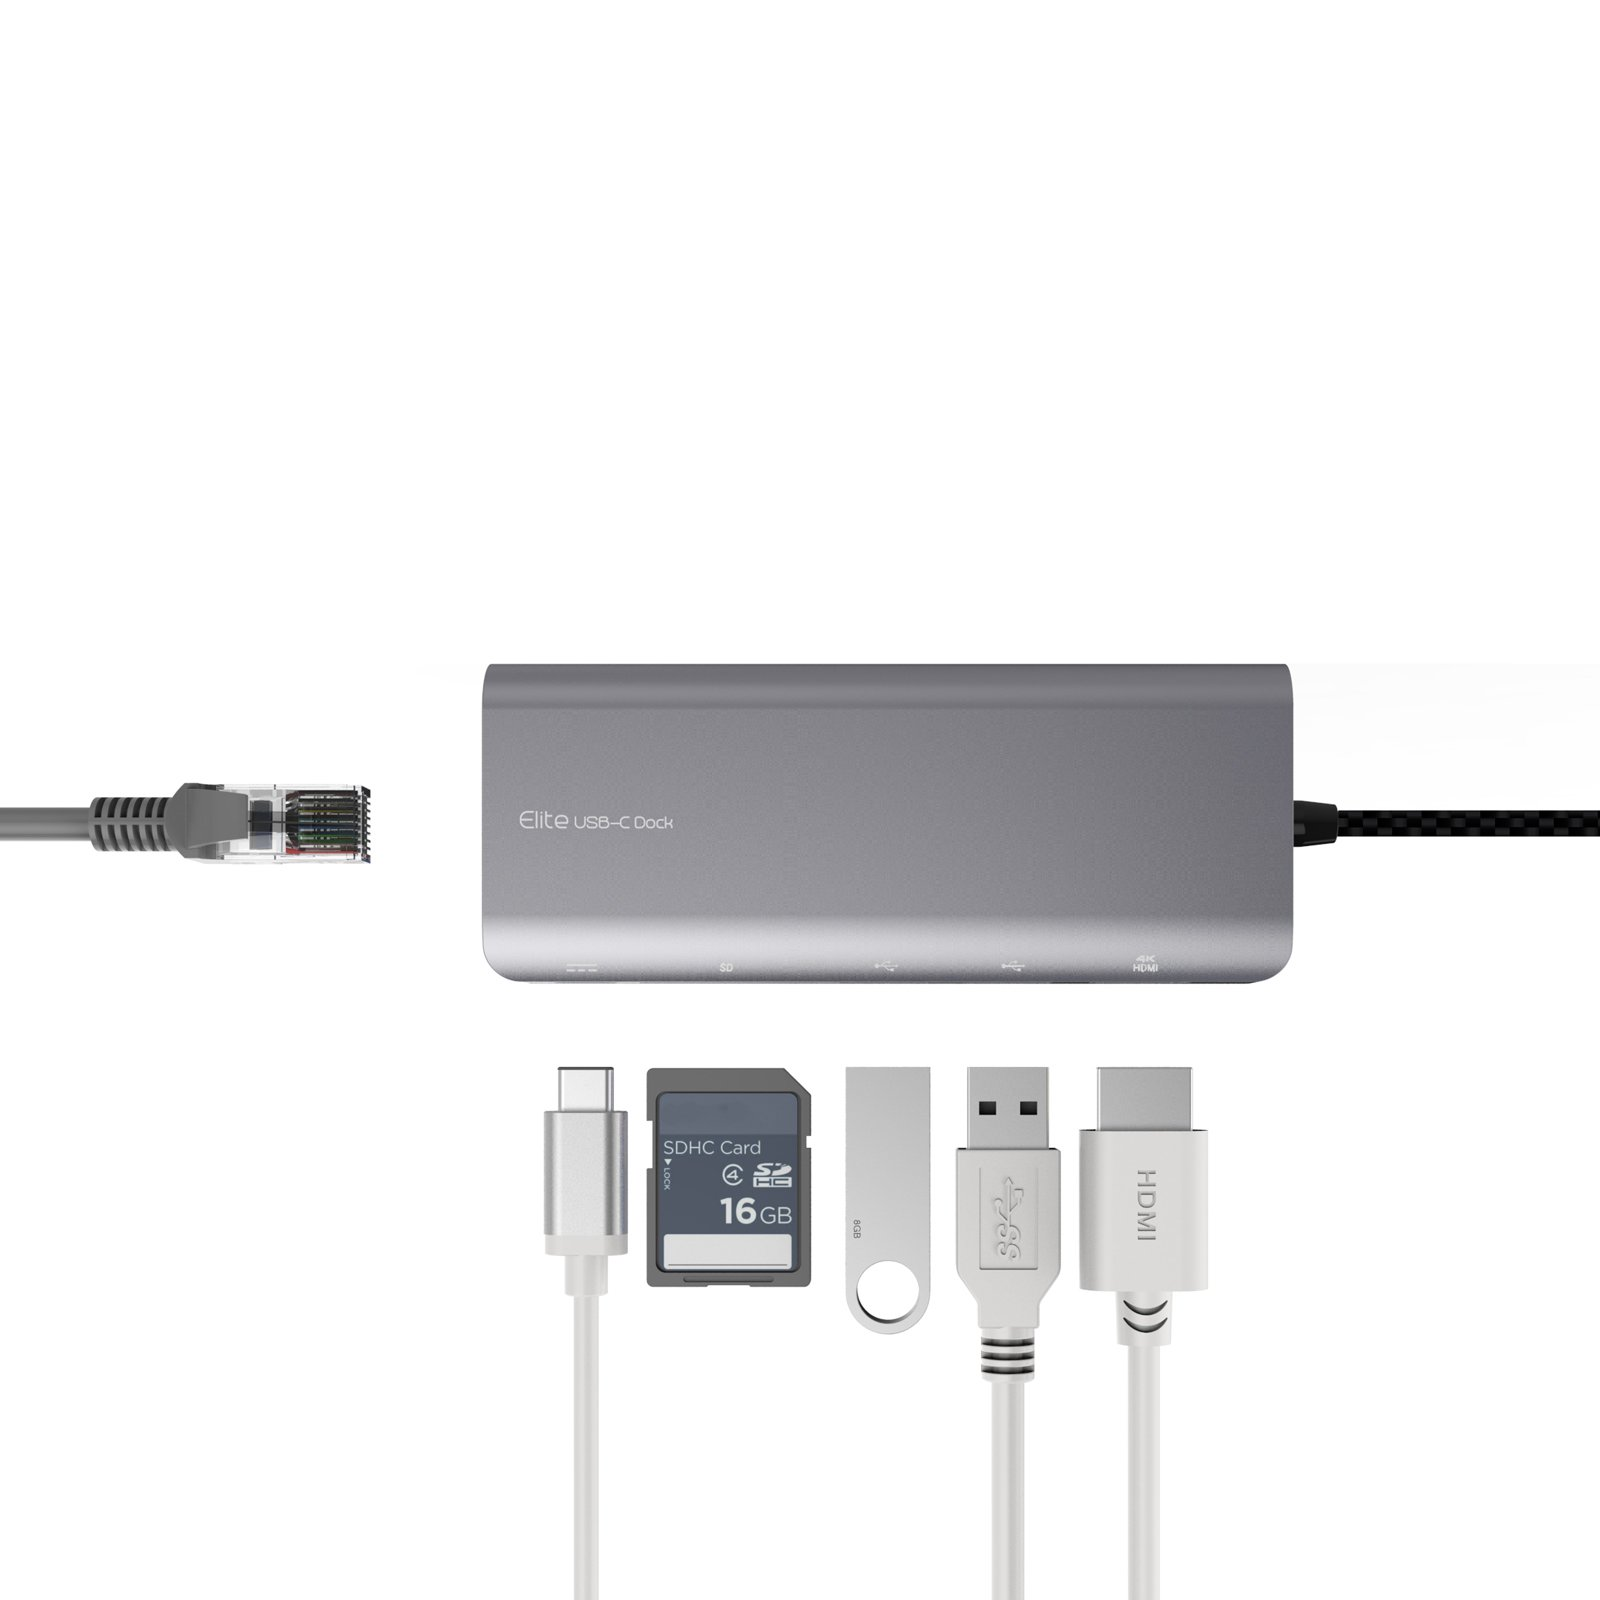 mbeat USB-C Hub (USB Type C) Docking Station, supports MacBook Pro, 60W power pass through, 4K HDMI, Ethernet(RJ45), 2 x USB 3.1 Type-A ports, USB-C port, SD memory Card Reader (Space Grey) by mbeat (Image #4)